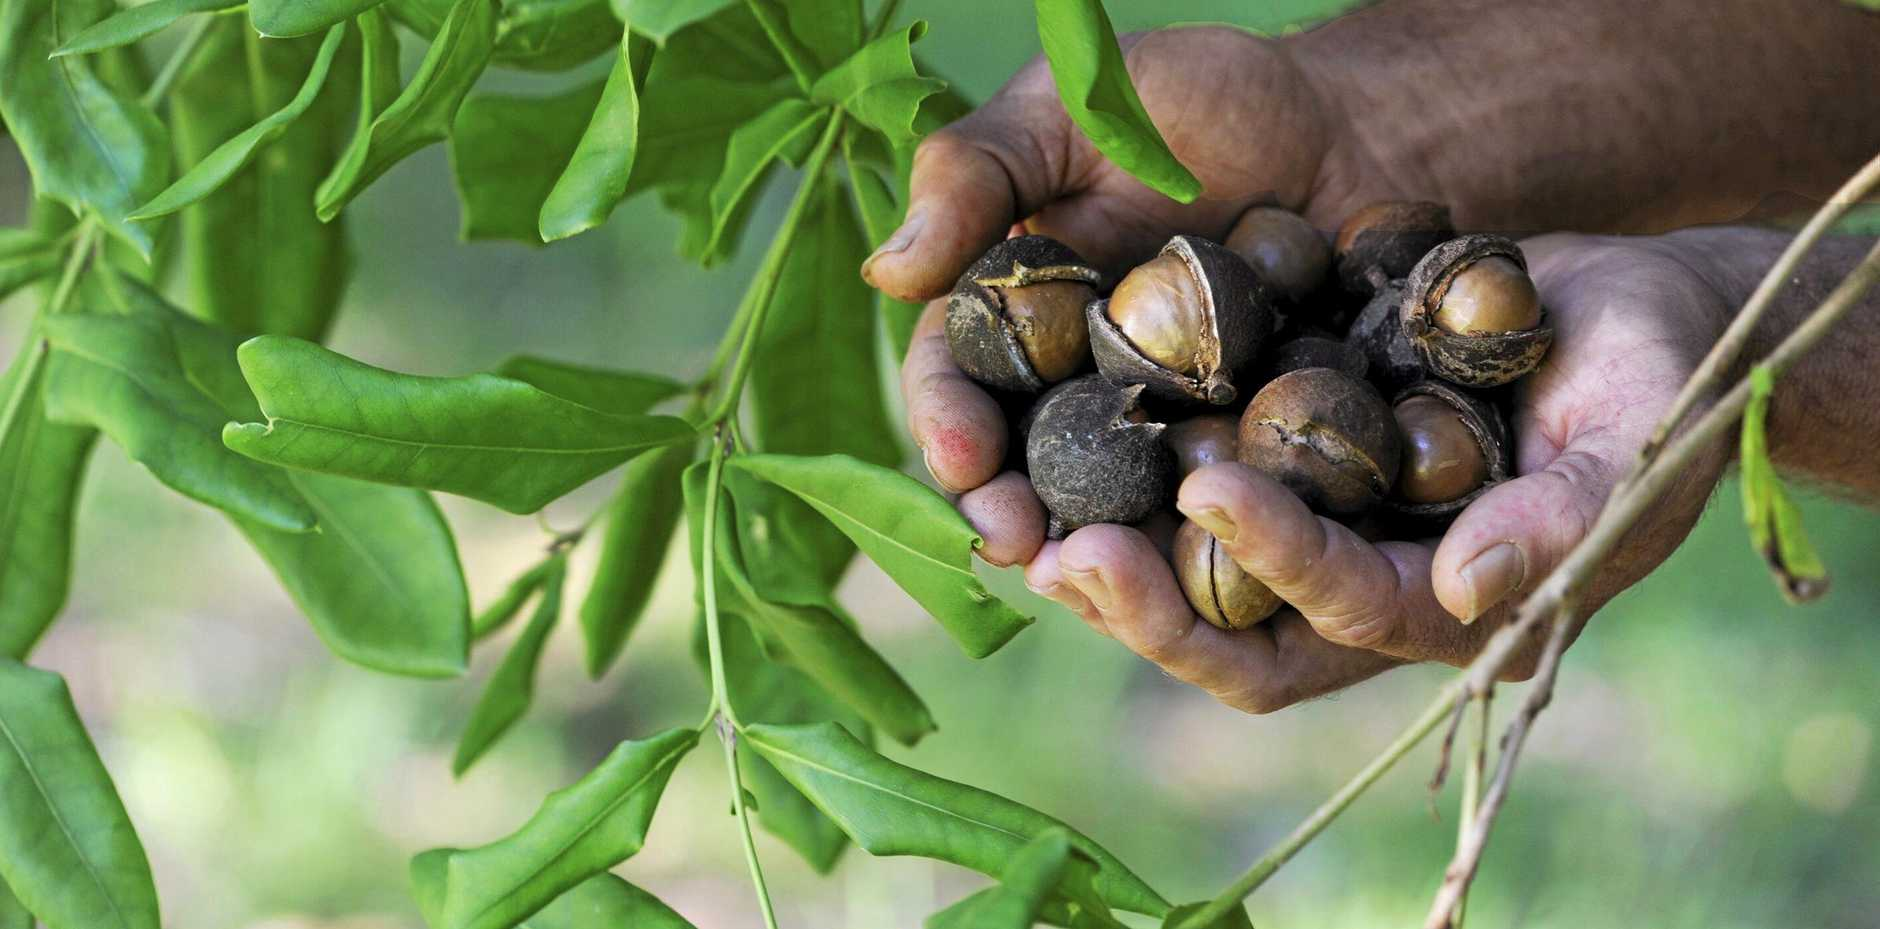 THE Gympie macadamia industry will gather tomorrow for an important industry 'MacGroup' event at a local orchard.